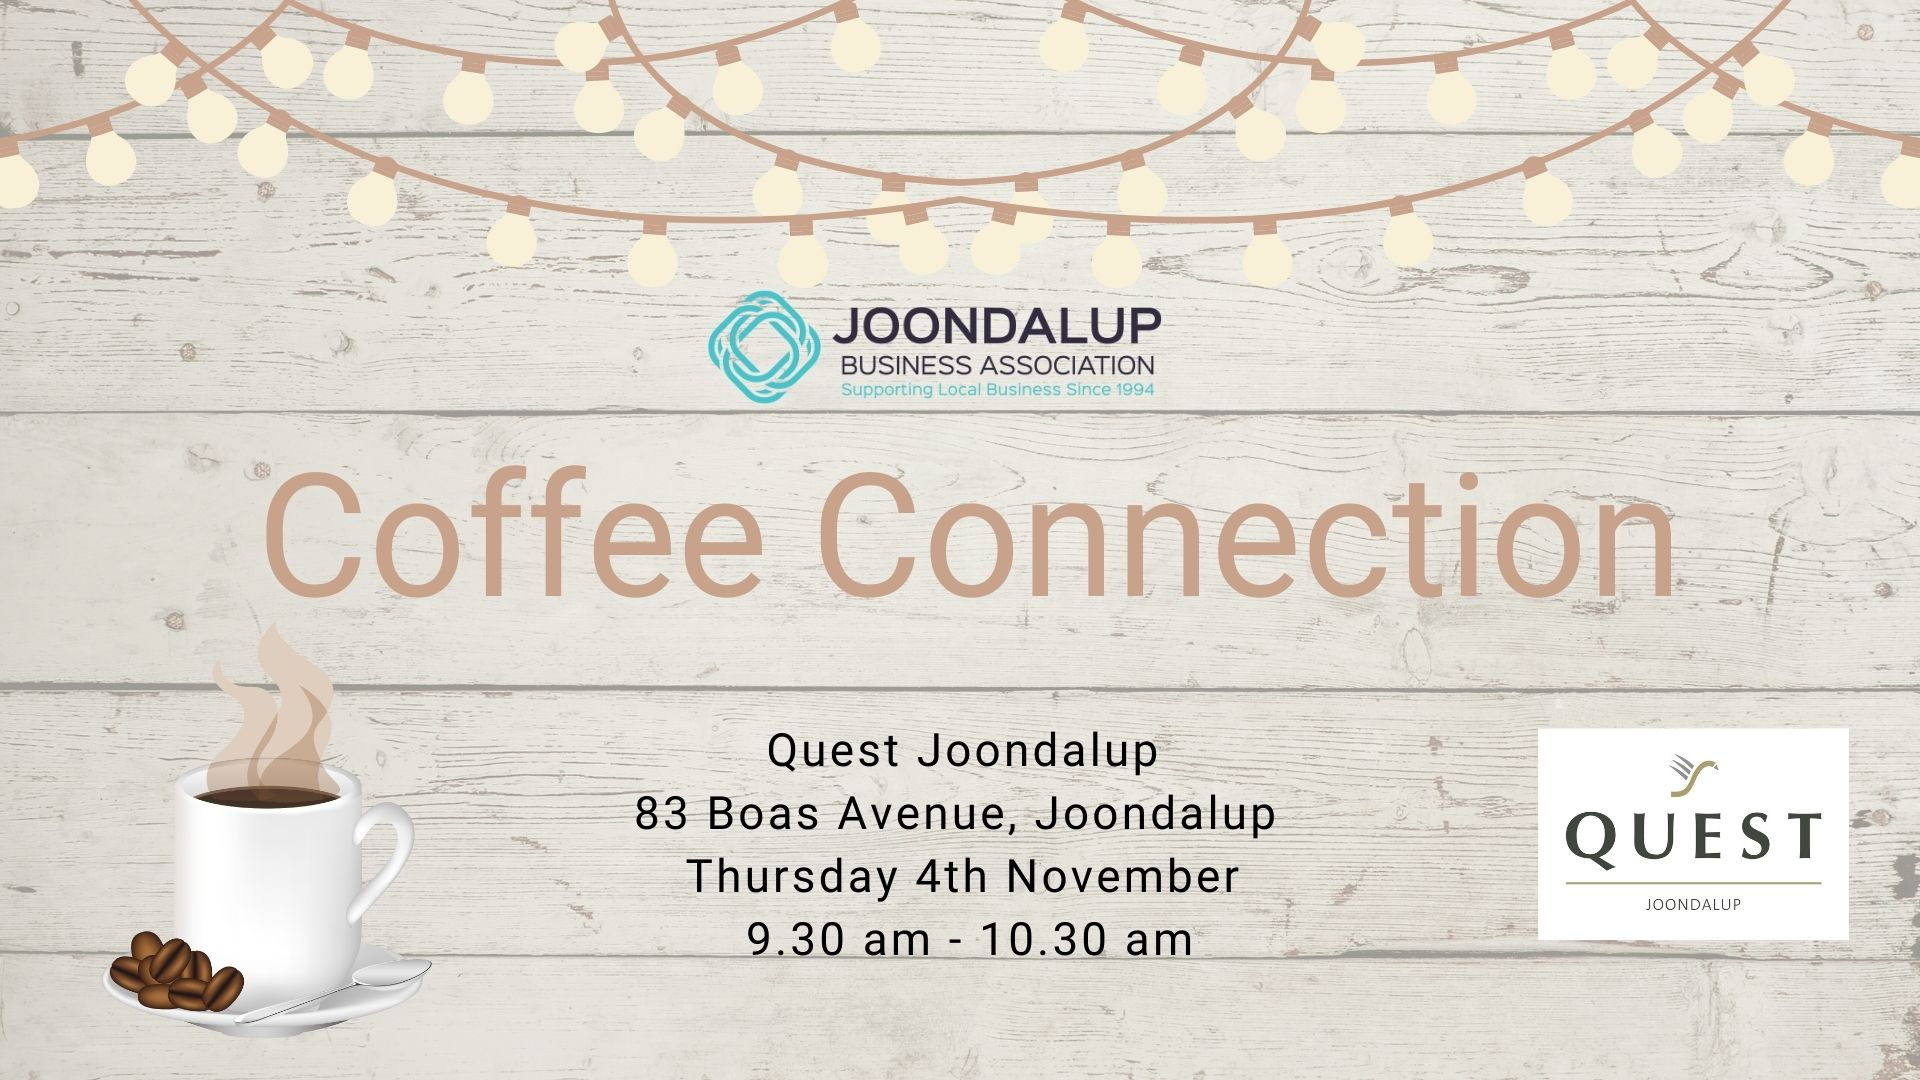 Coffee Connection - Quest Joondalup